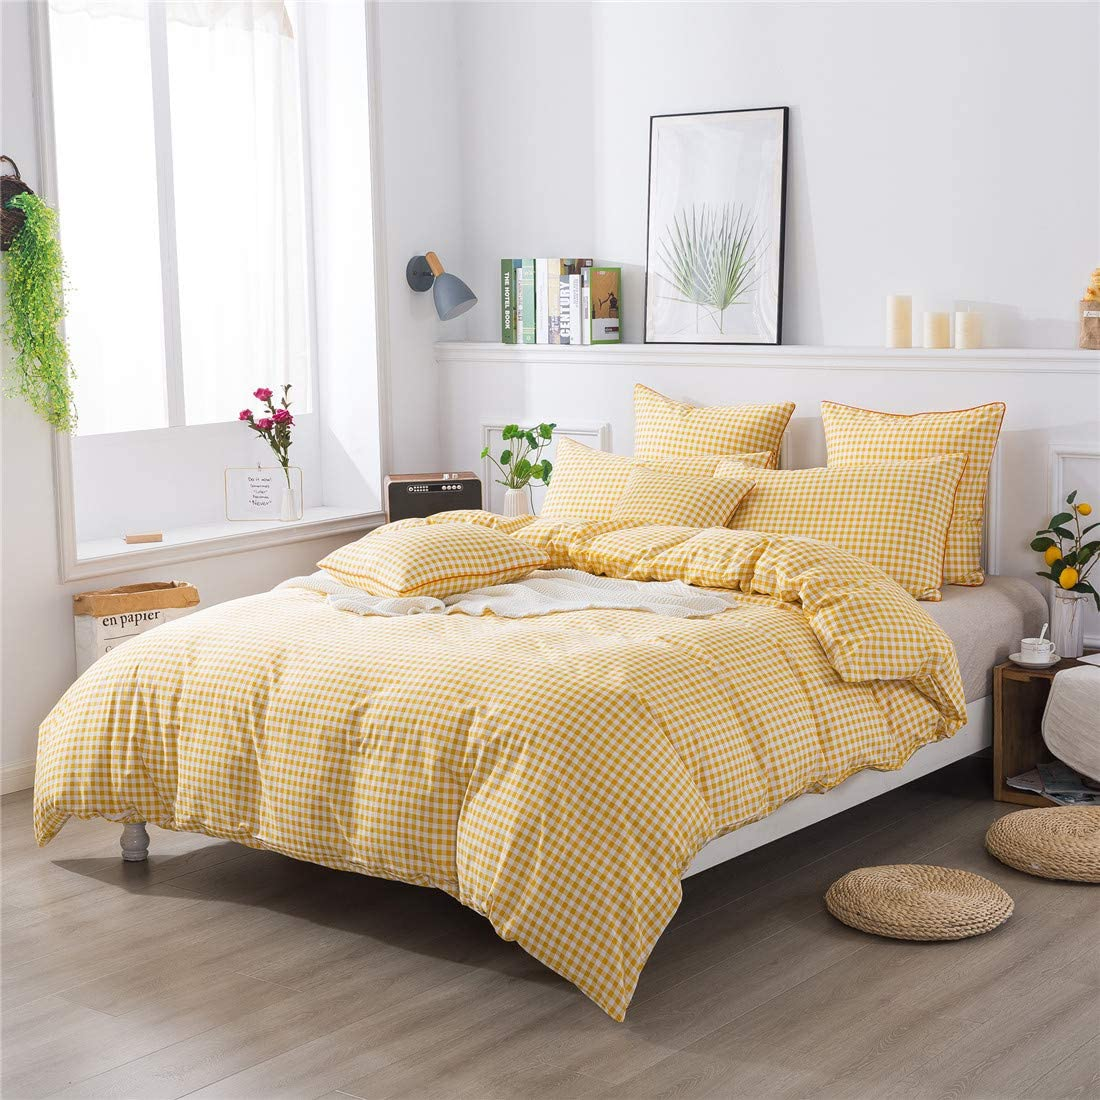 FADFAY Yellow Plaid Duvet Cover Set Queen 100% Cotton Hypoallergenic Grid Bedding Reversible Gingham Geometric Checker Bedding Set with Zipper Closure 3Pcs